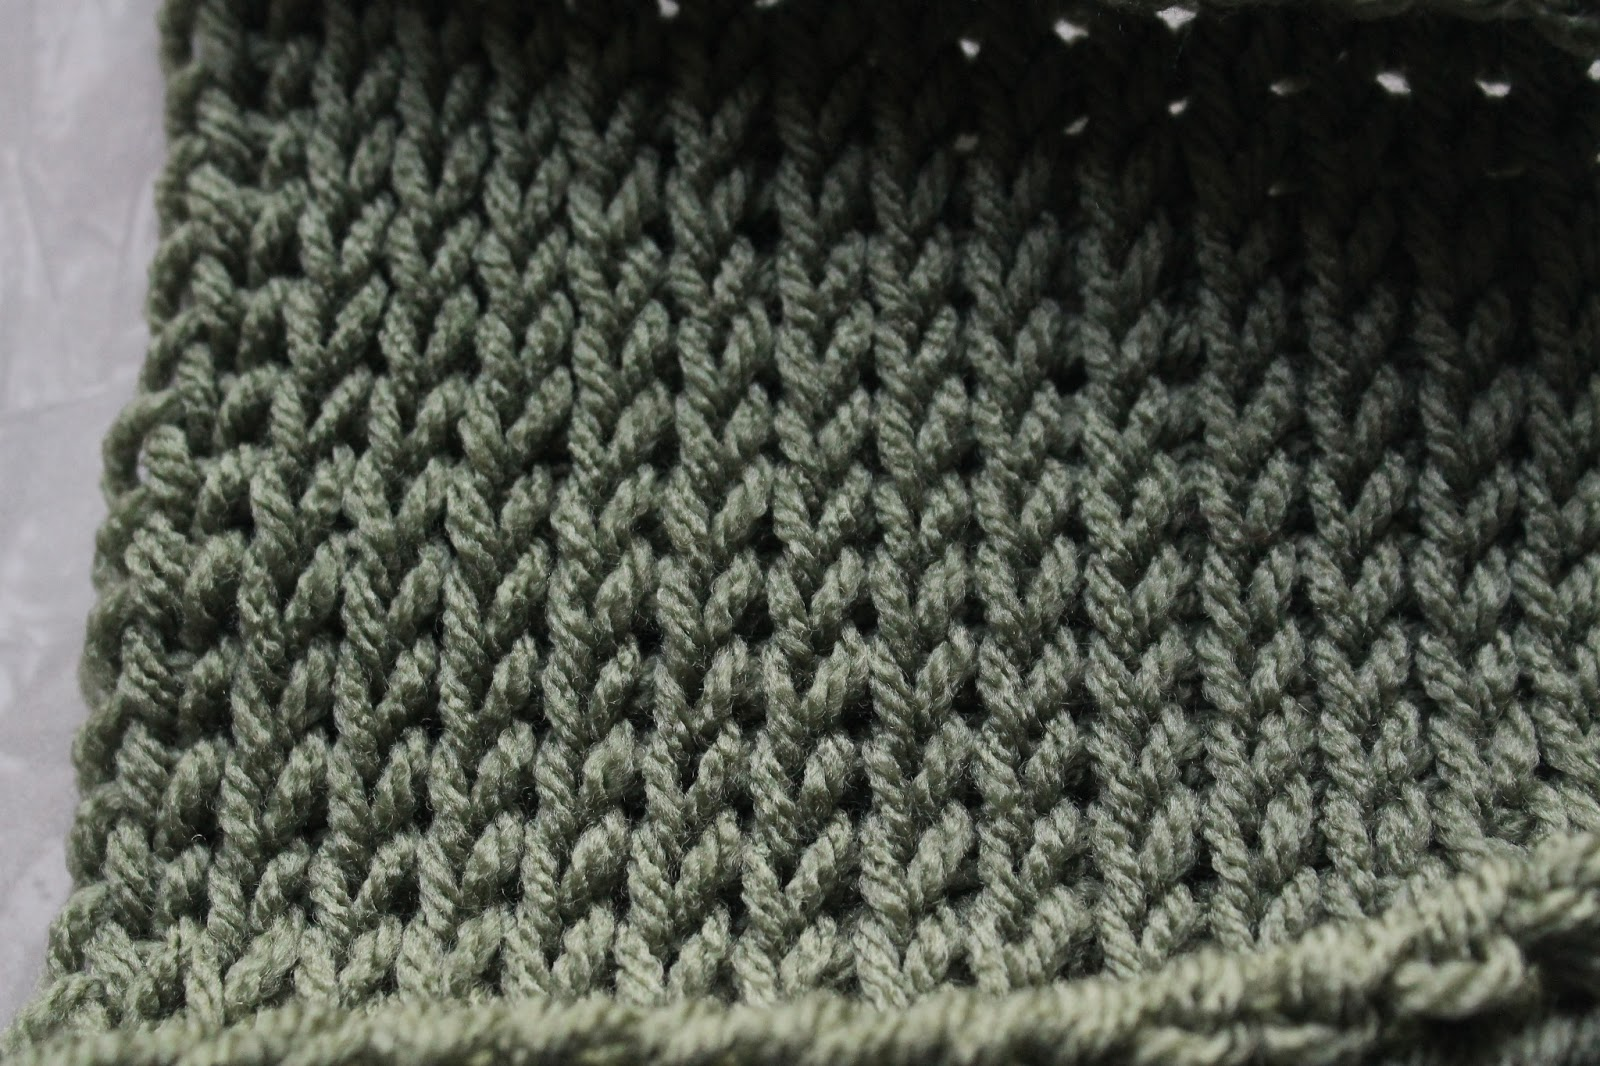 Crochet Like Knitting : the tunisian knit stitch tks looks like knitting but it s crocheted ...